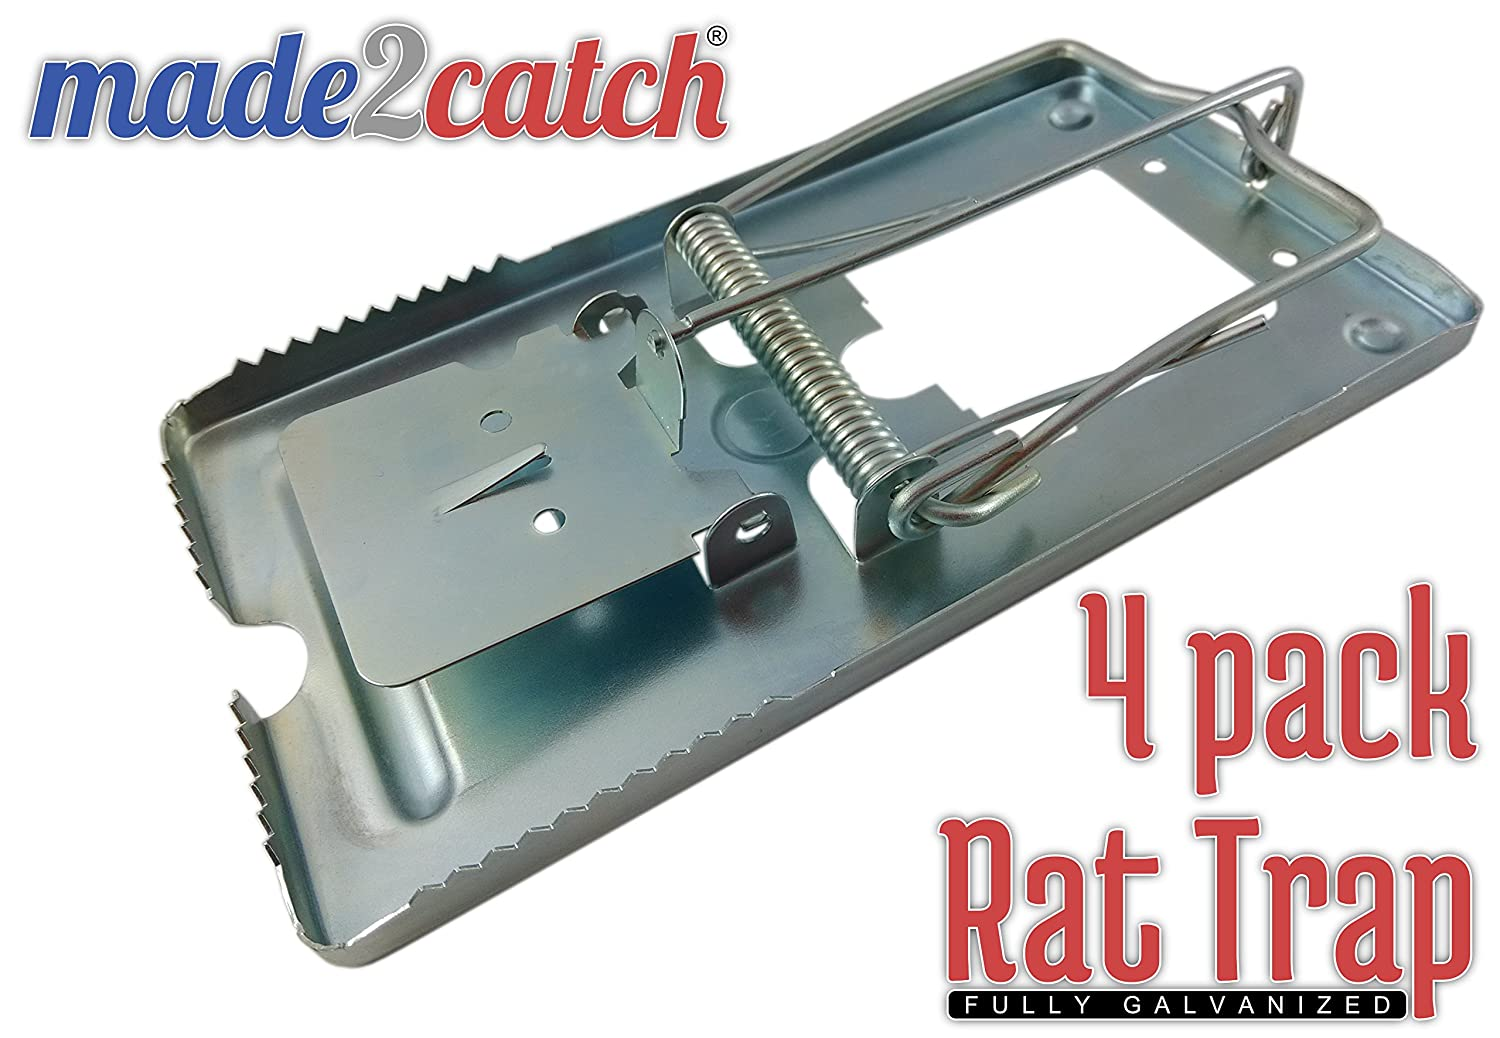 Made2catch Classic Metal Rat Trap Fully Galvanized